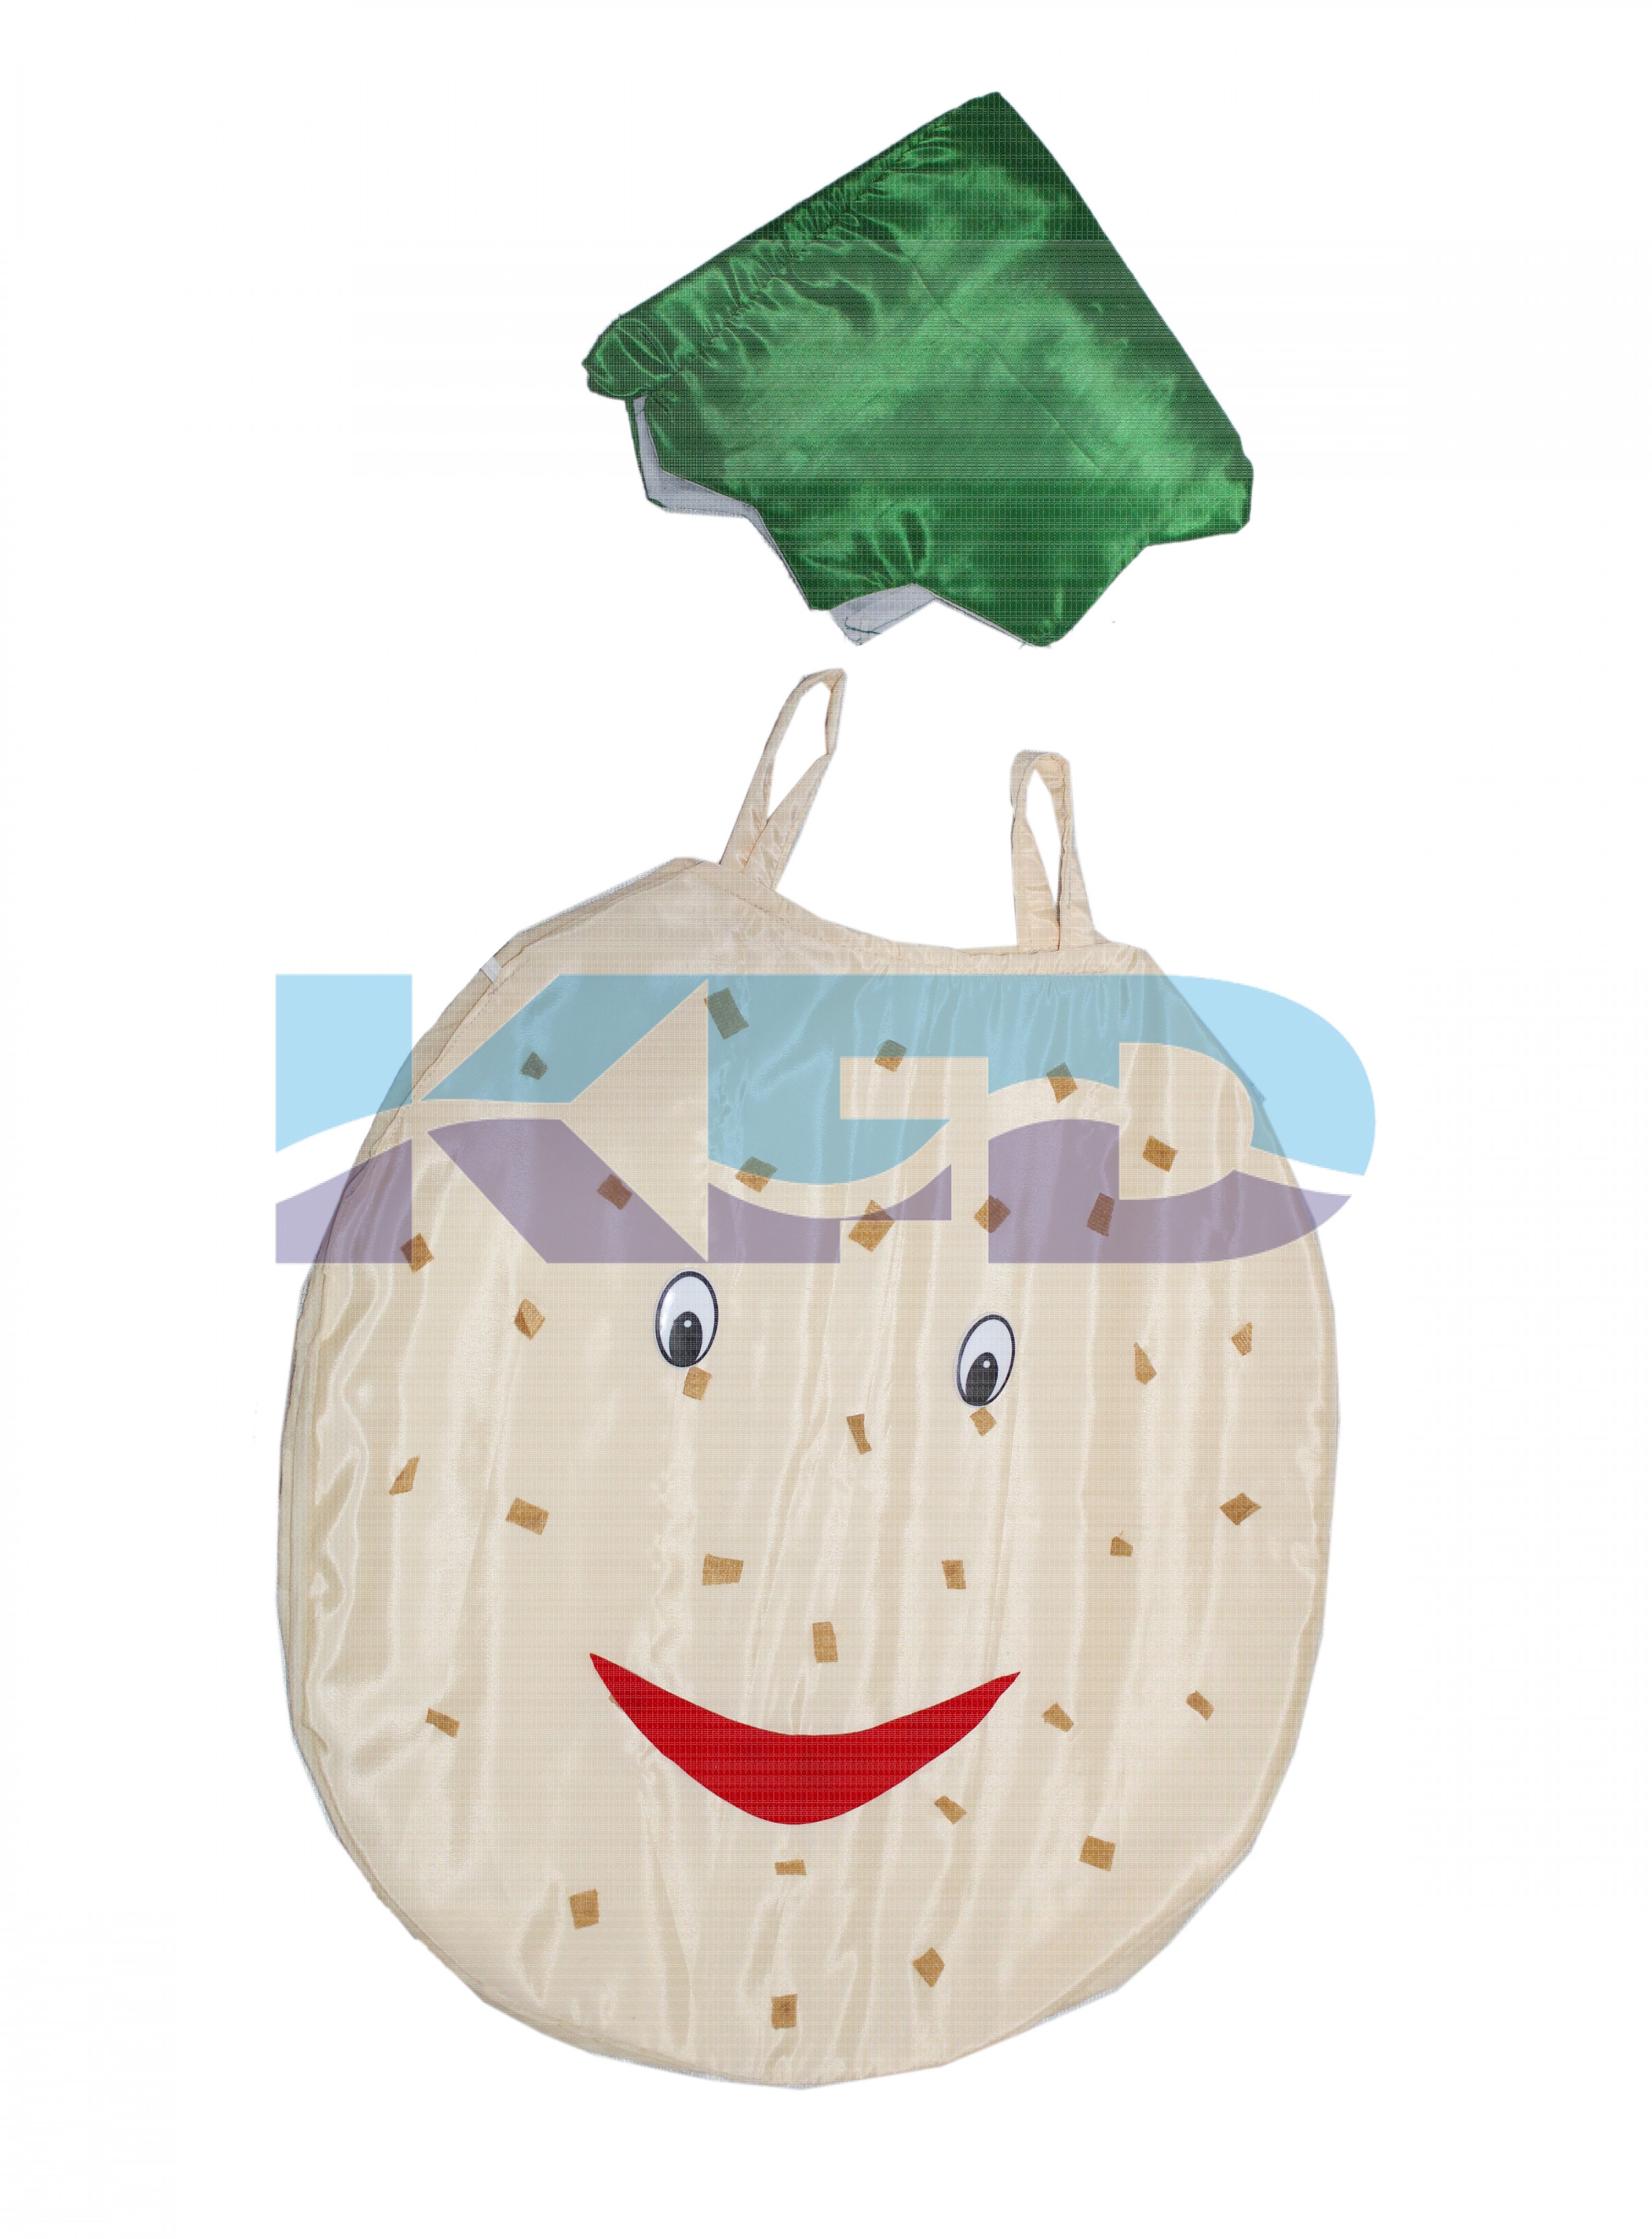 Potato Vegetables Costume only cutout with Cap for Annual function/Theme Party/Competition/Stage Shows/Birthday Party Dress